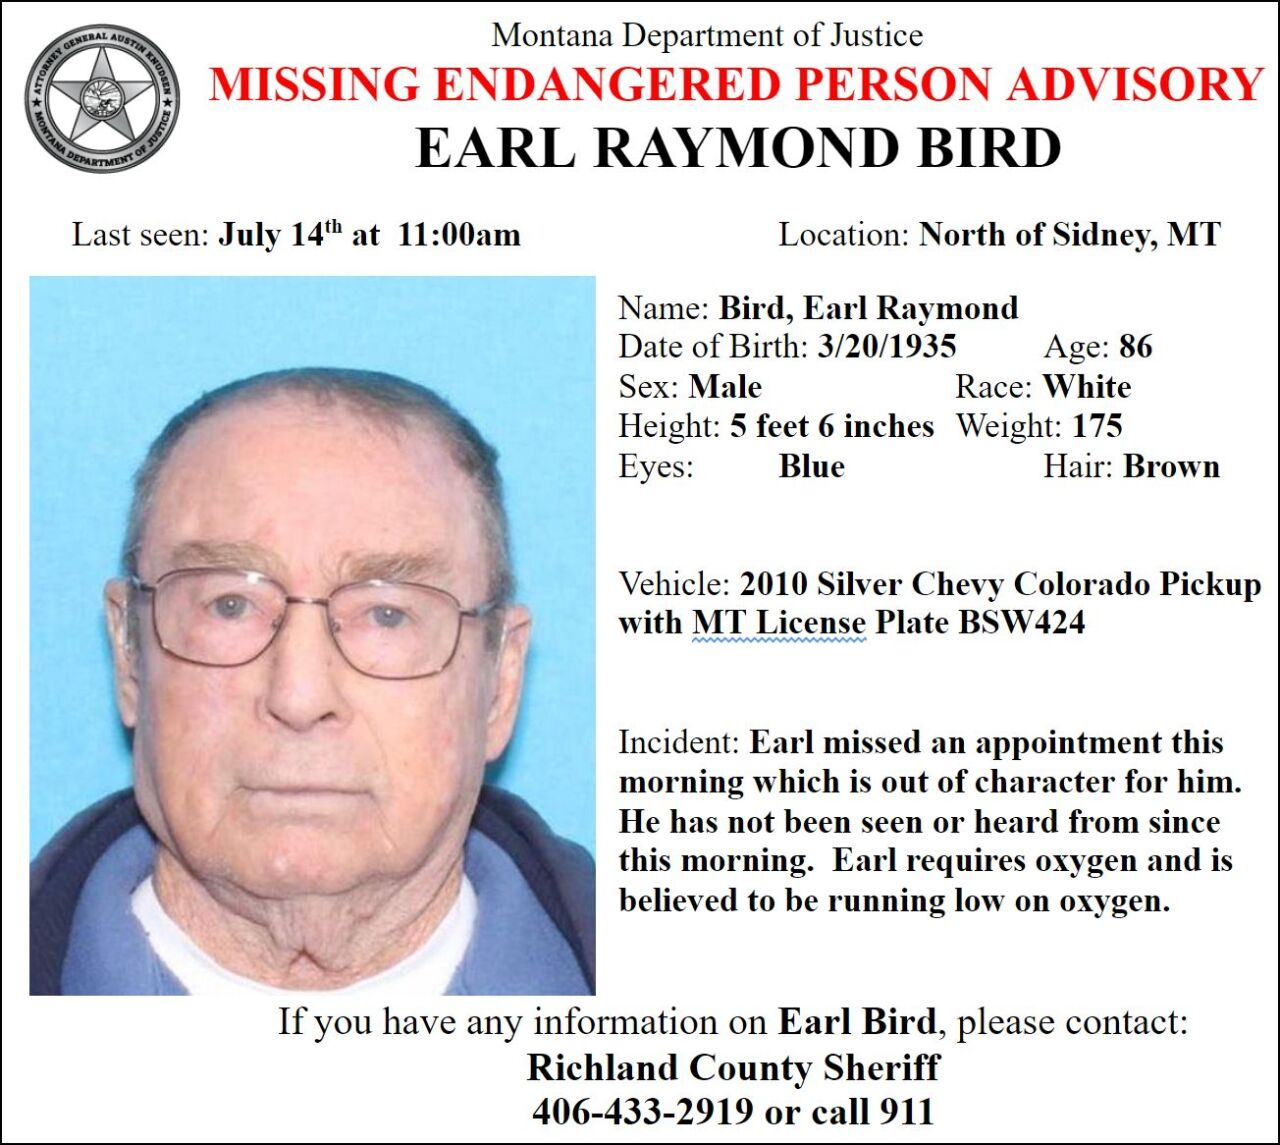 Missing-Endangered Person Advisory for 86-year old Earl Raymond Bird